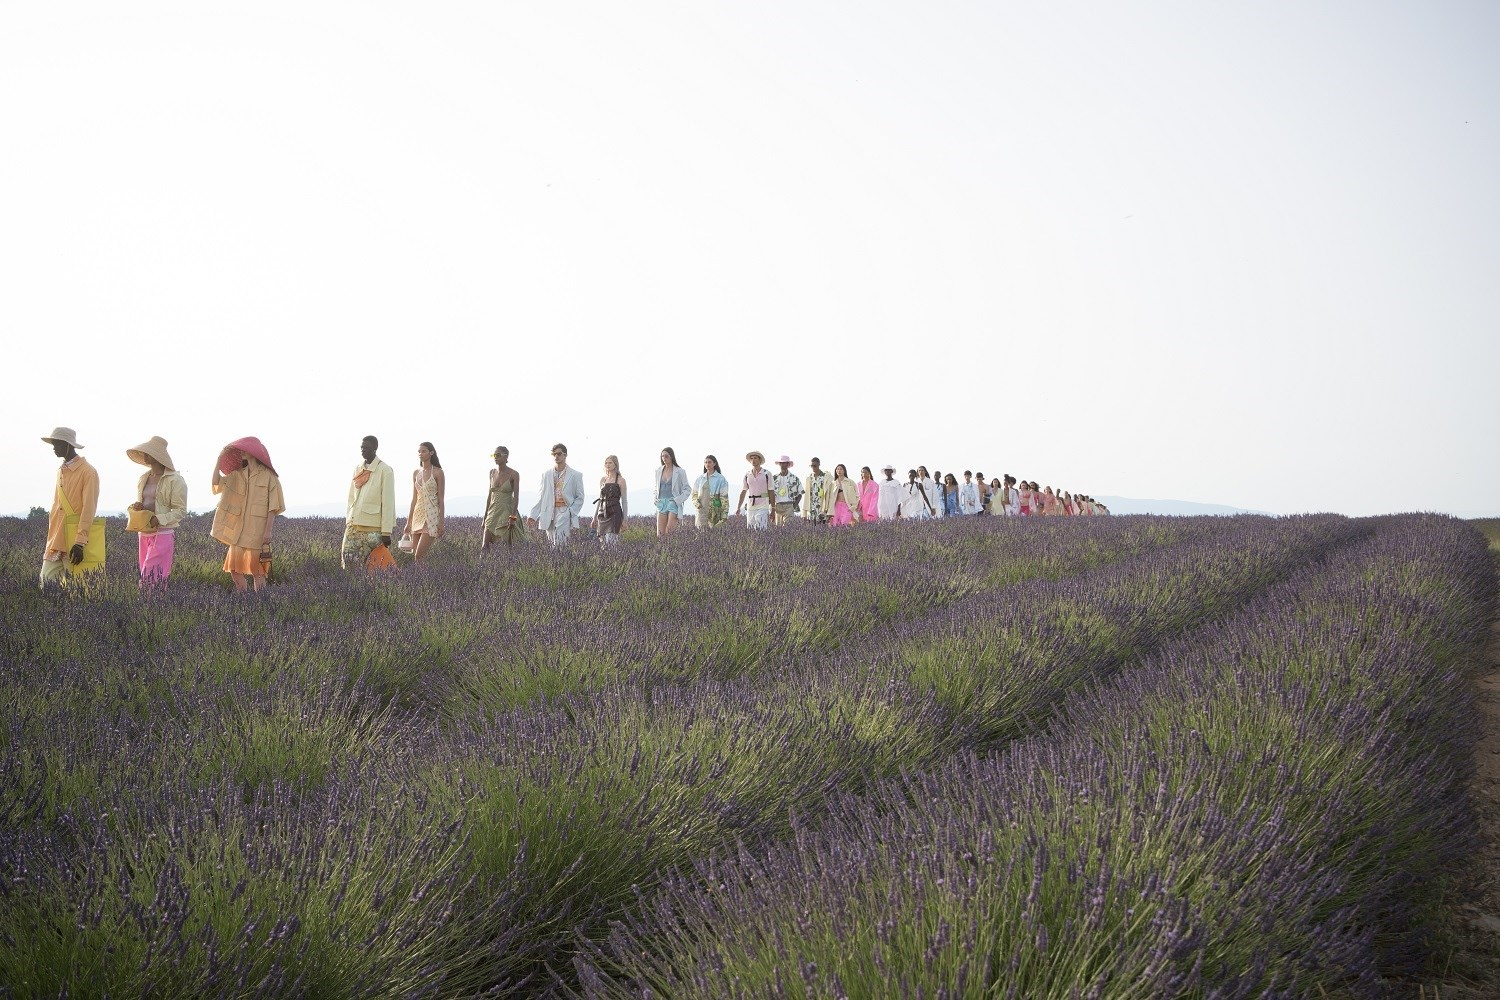 Photo credit: Gael Sillère – ENSP, Arles, Courtesy of Jacquemus